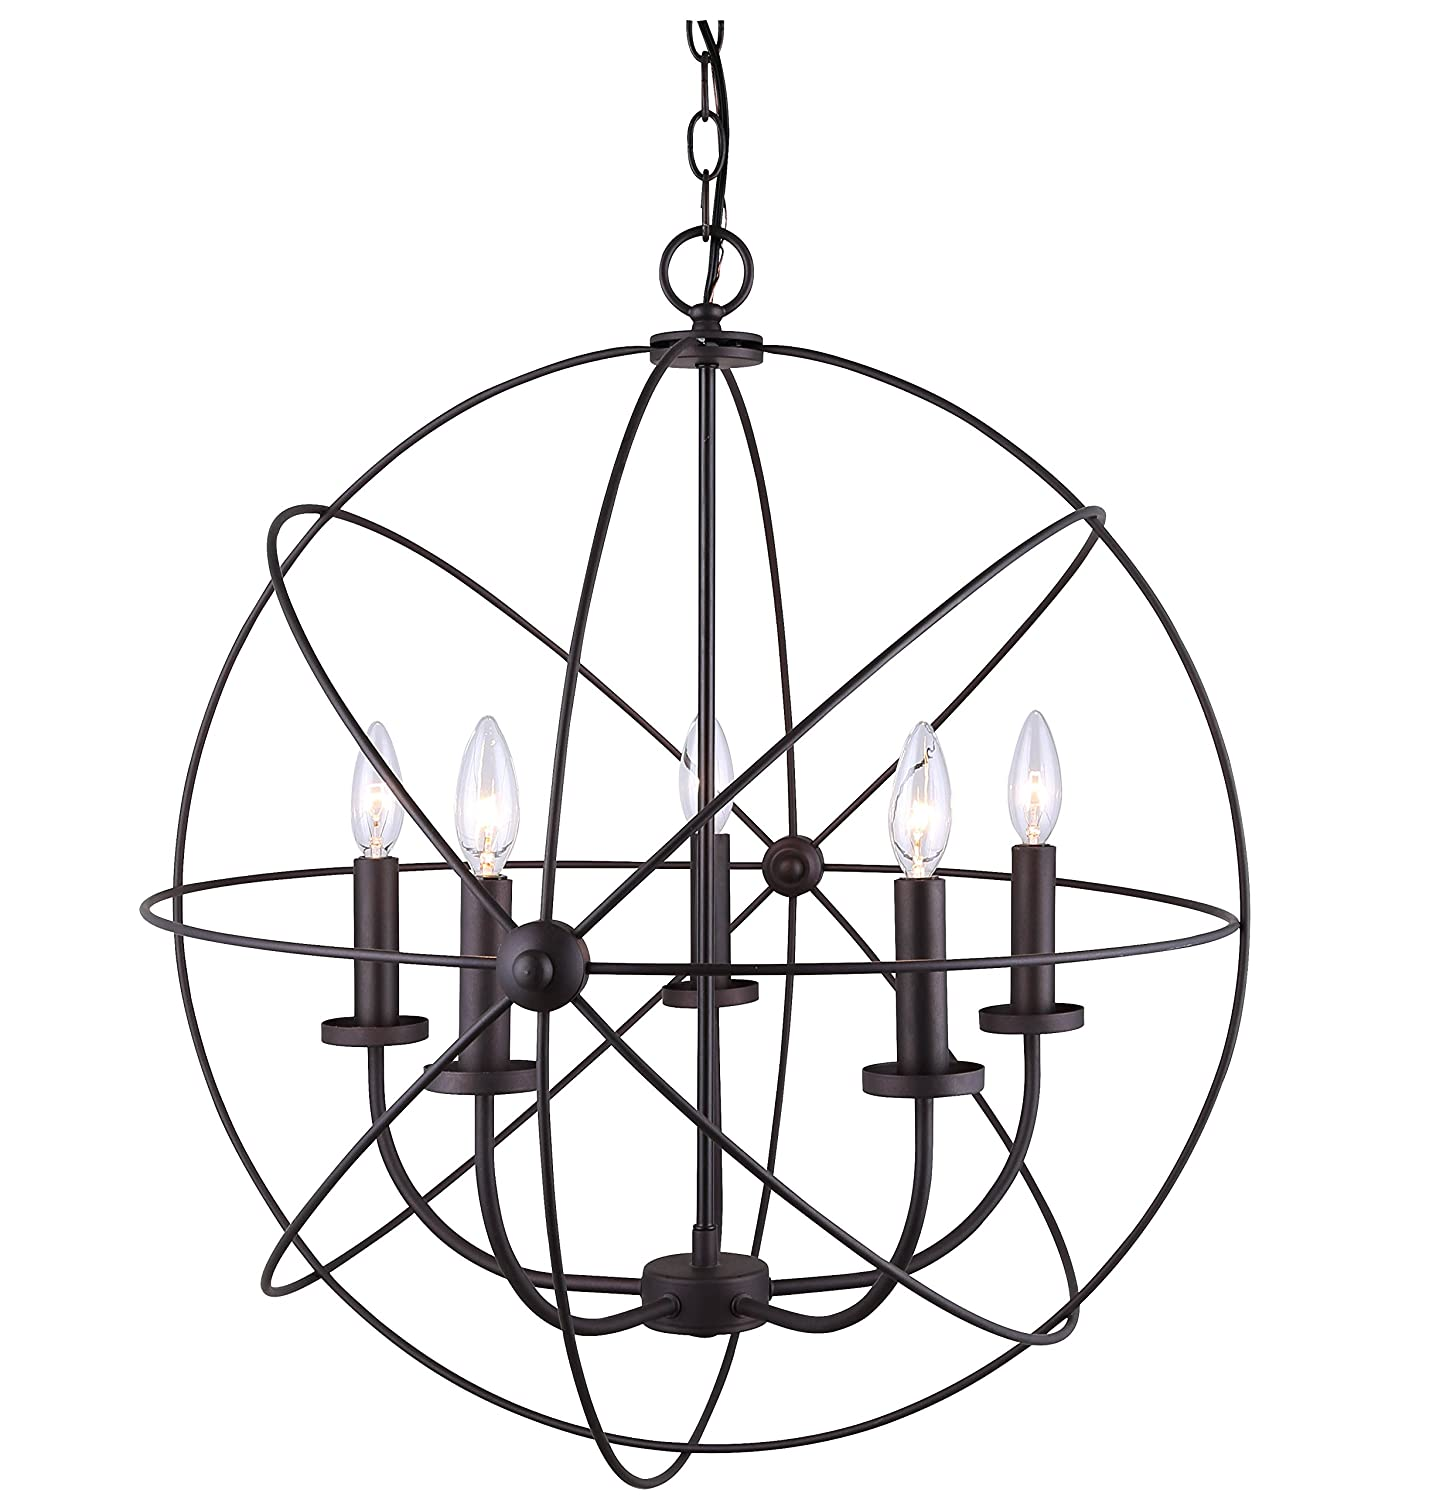 CANARM ICH282B05ORB25 Sumerside 5 Light Chandelier